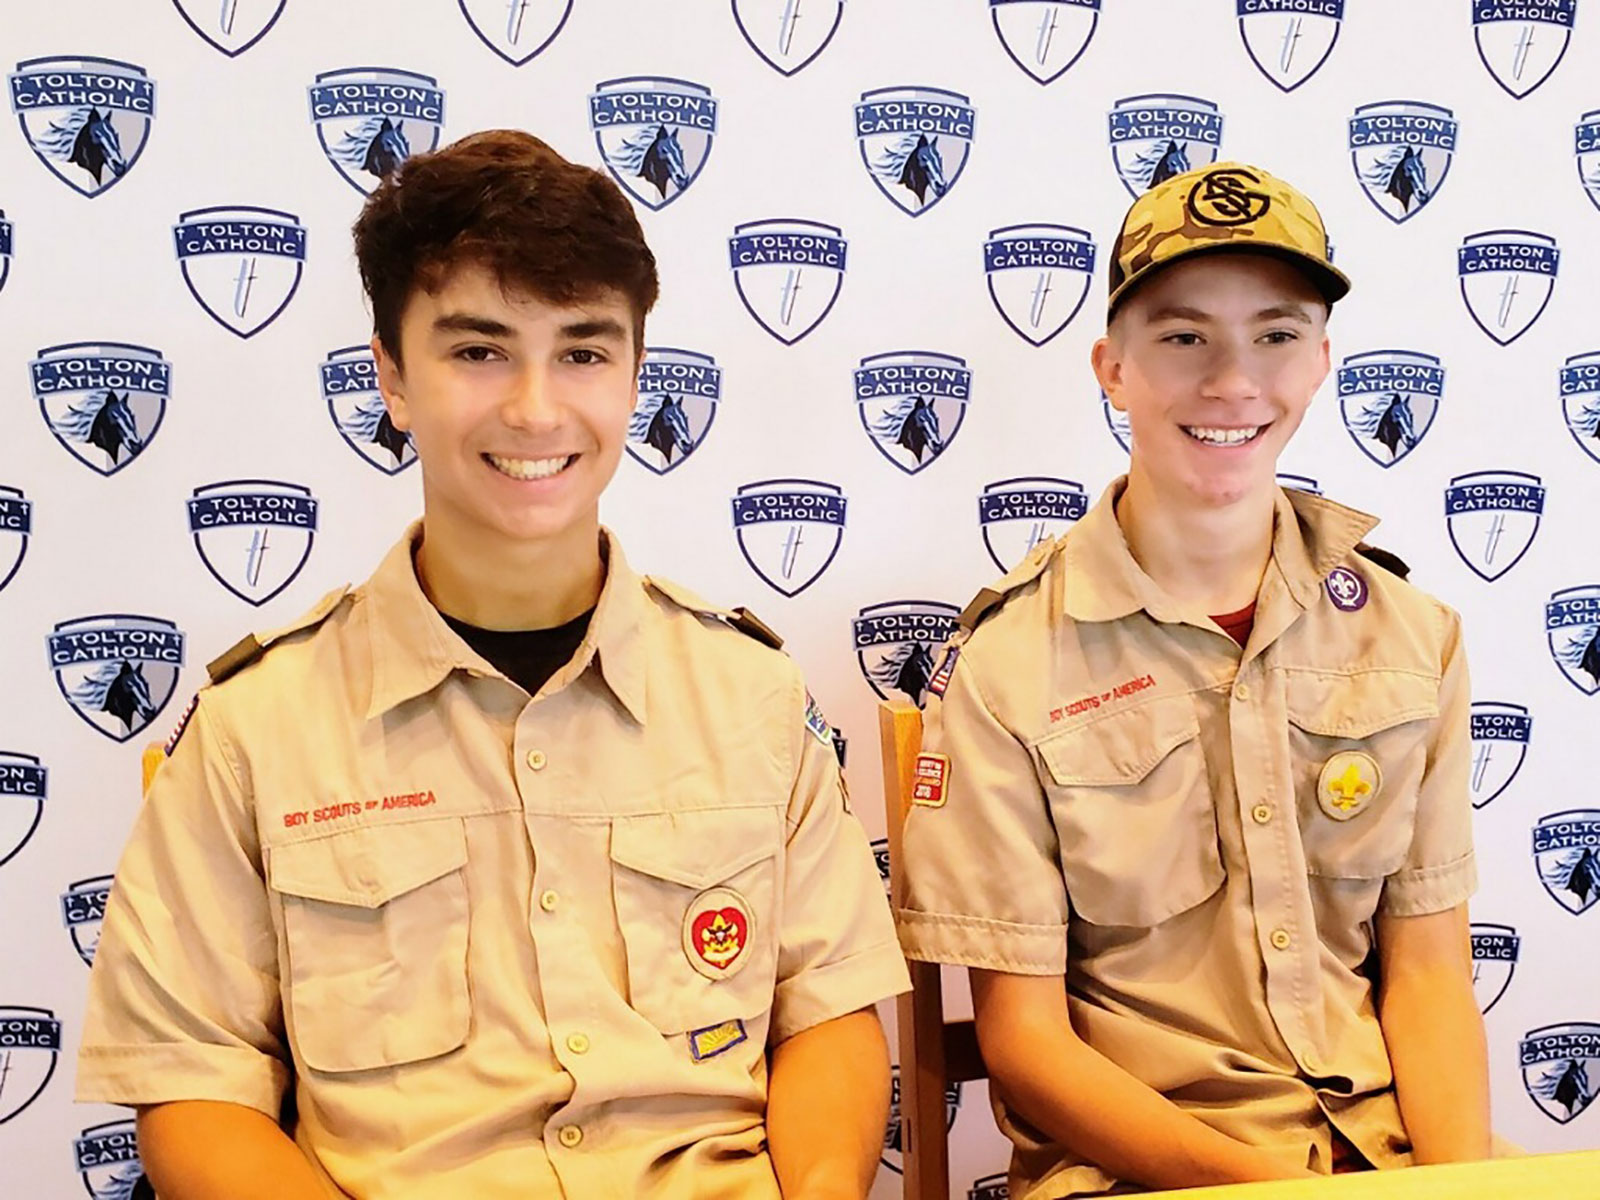 Two Boy Scouts saved a drowning woman's life after pulling her out of Missouri floodwaters